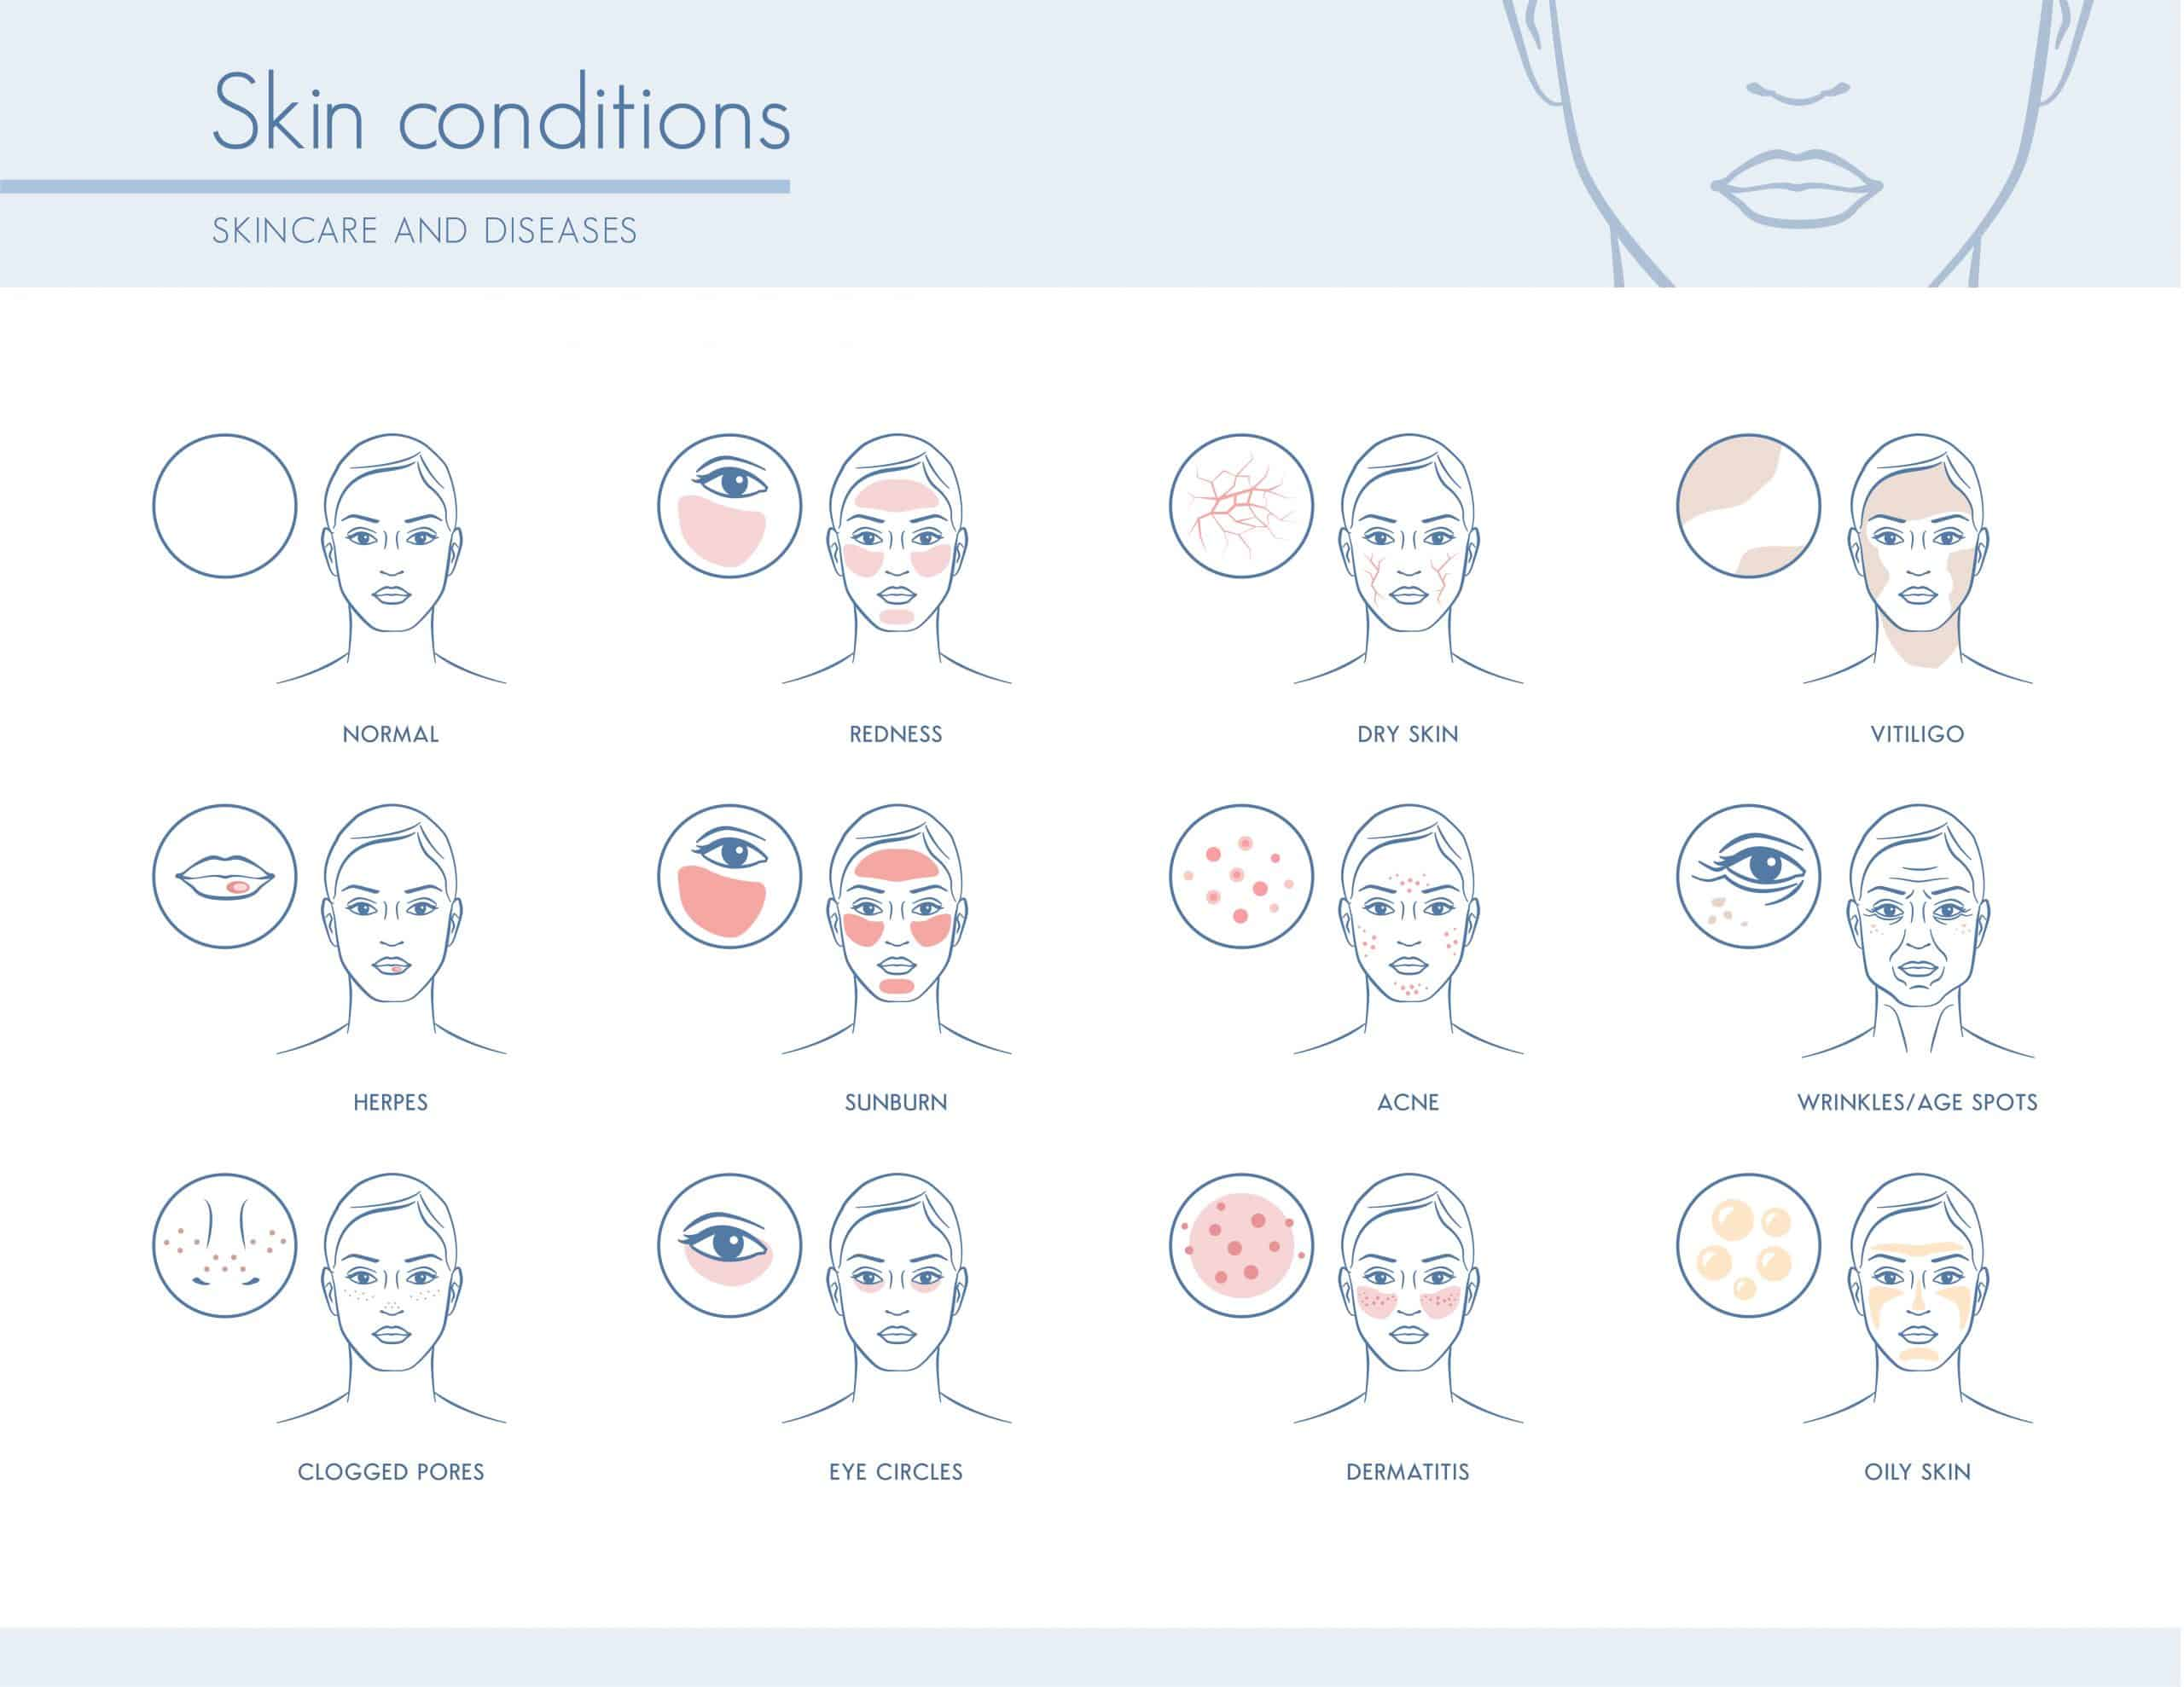 Hormones and Skin conditions: The complete guide